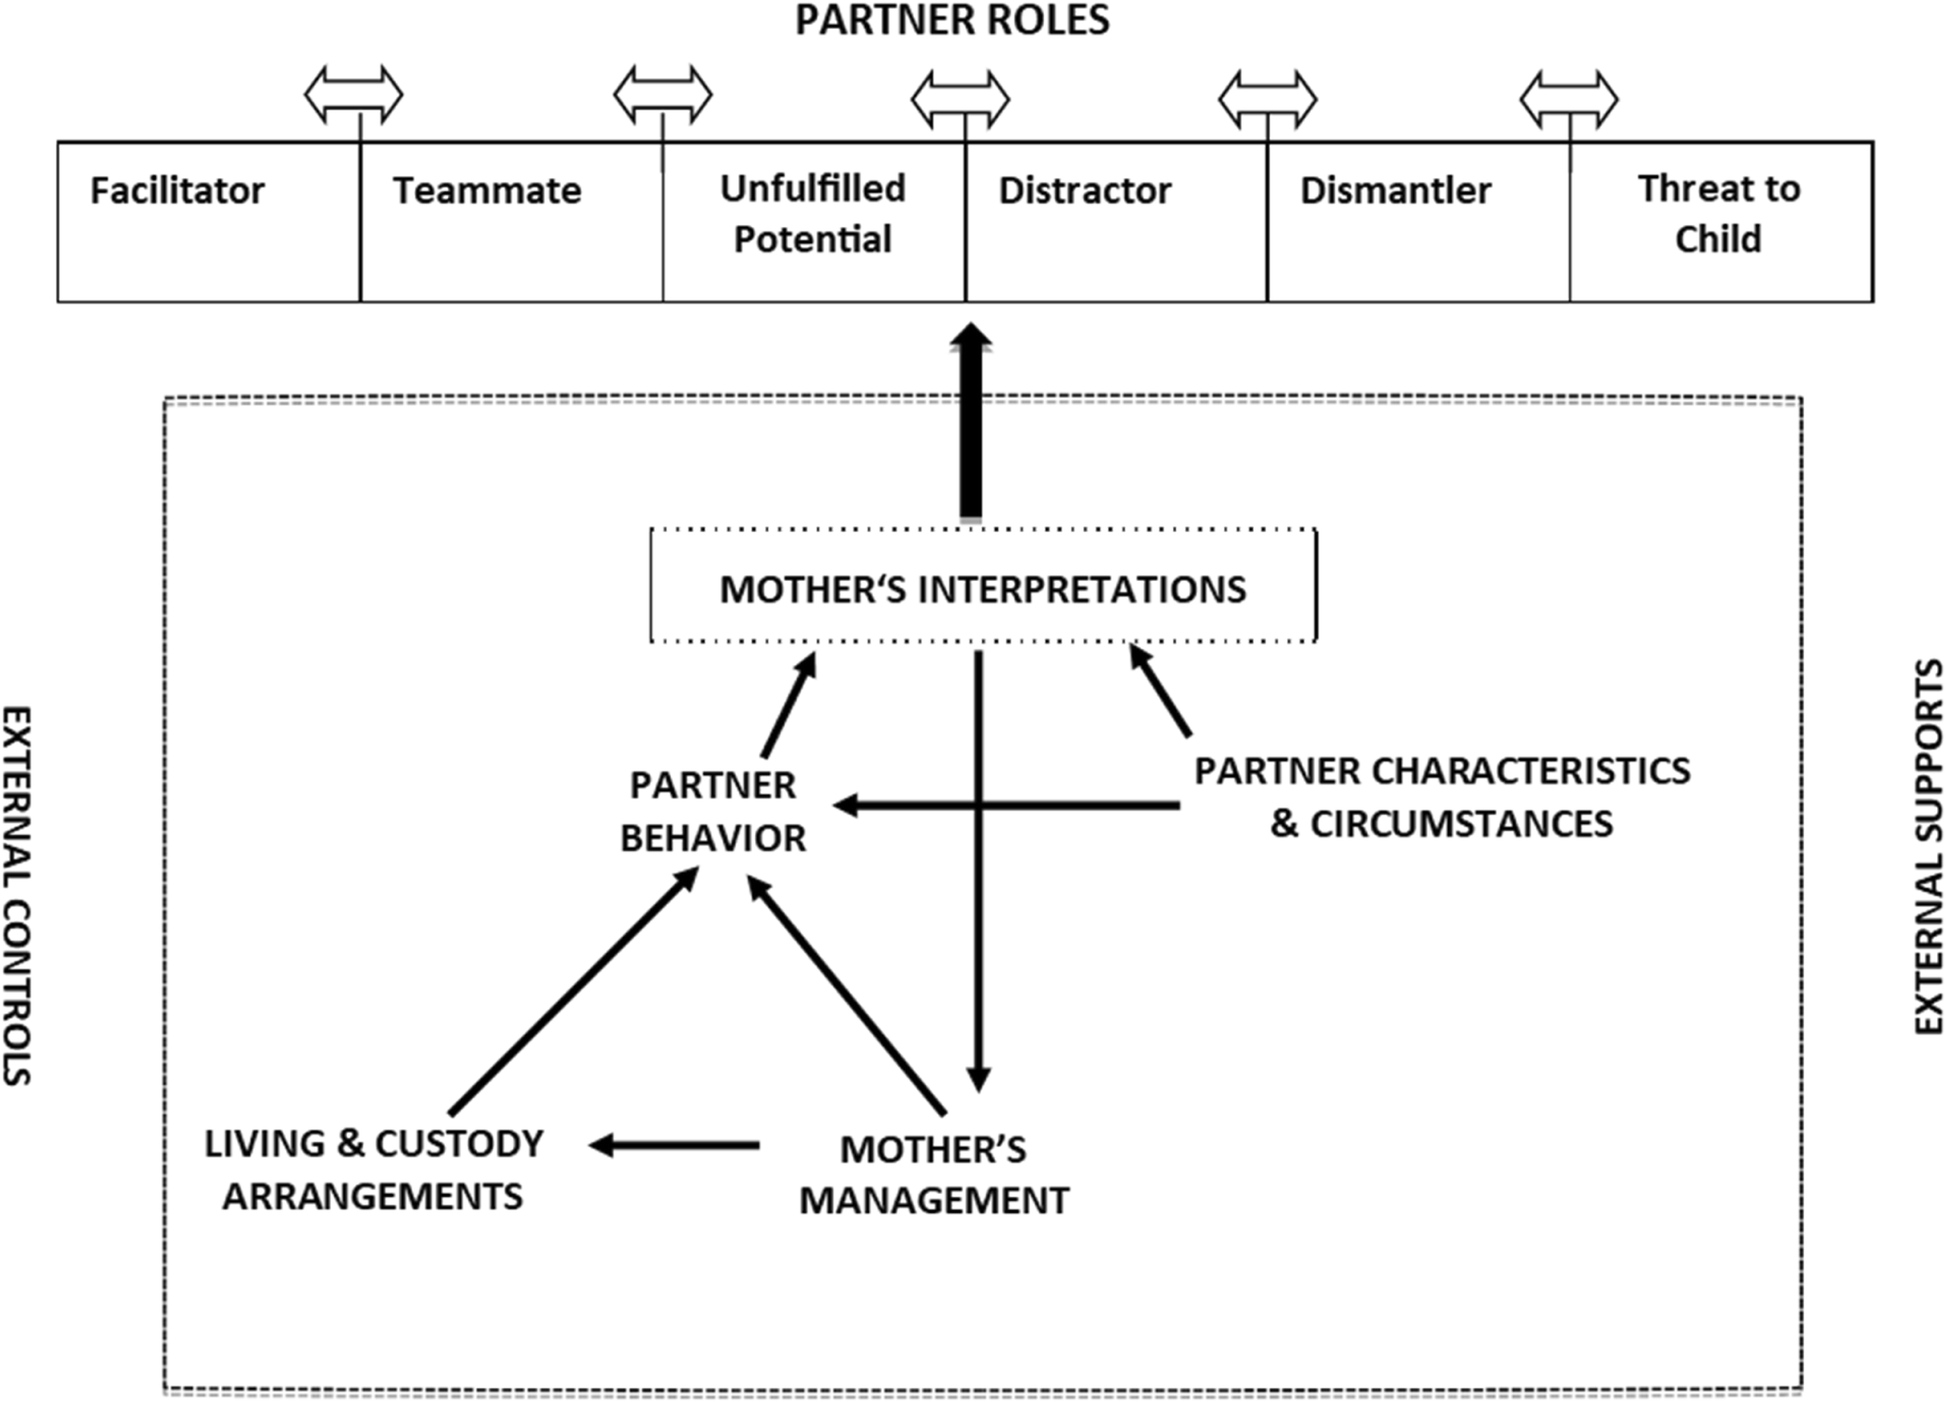 What roles do male partners play in the mothering